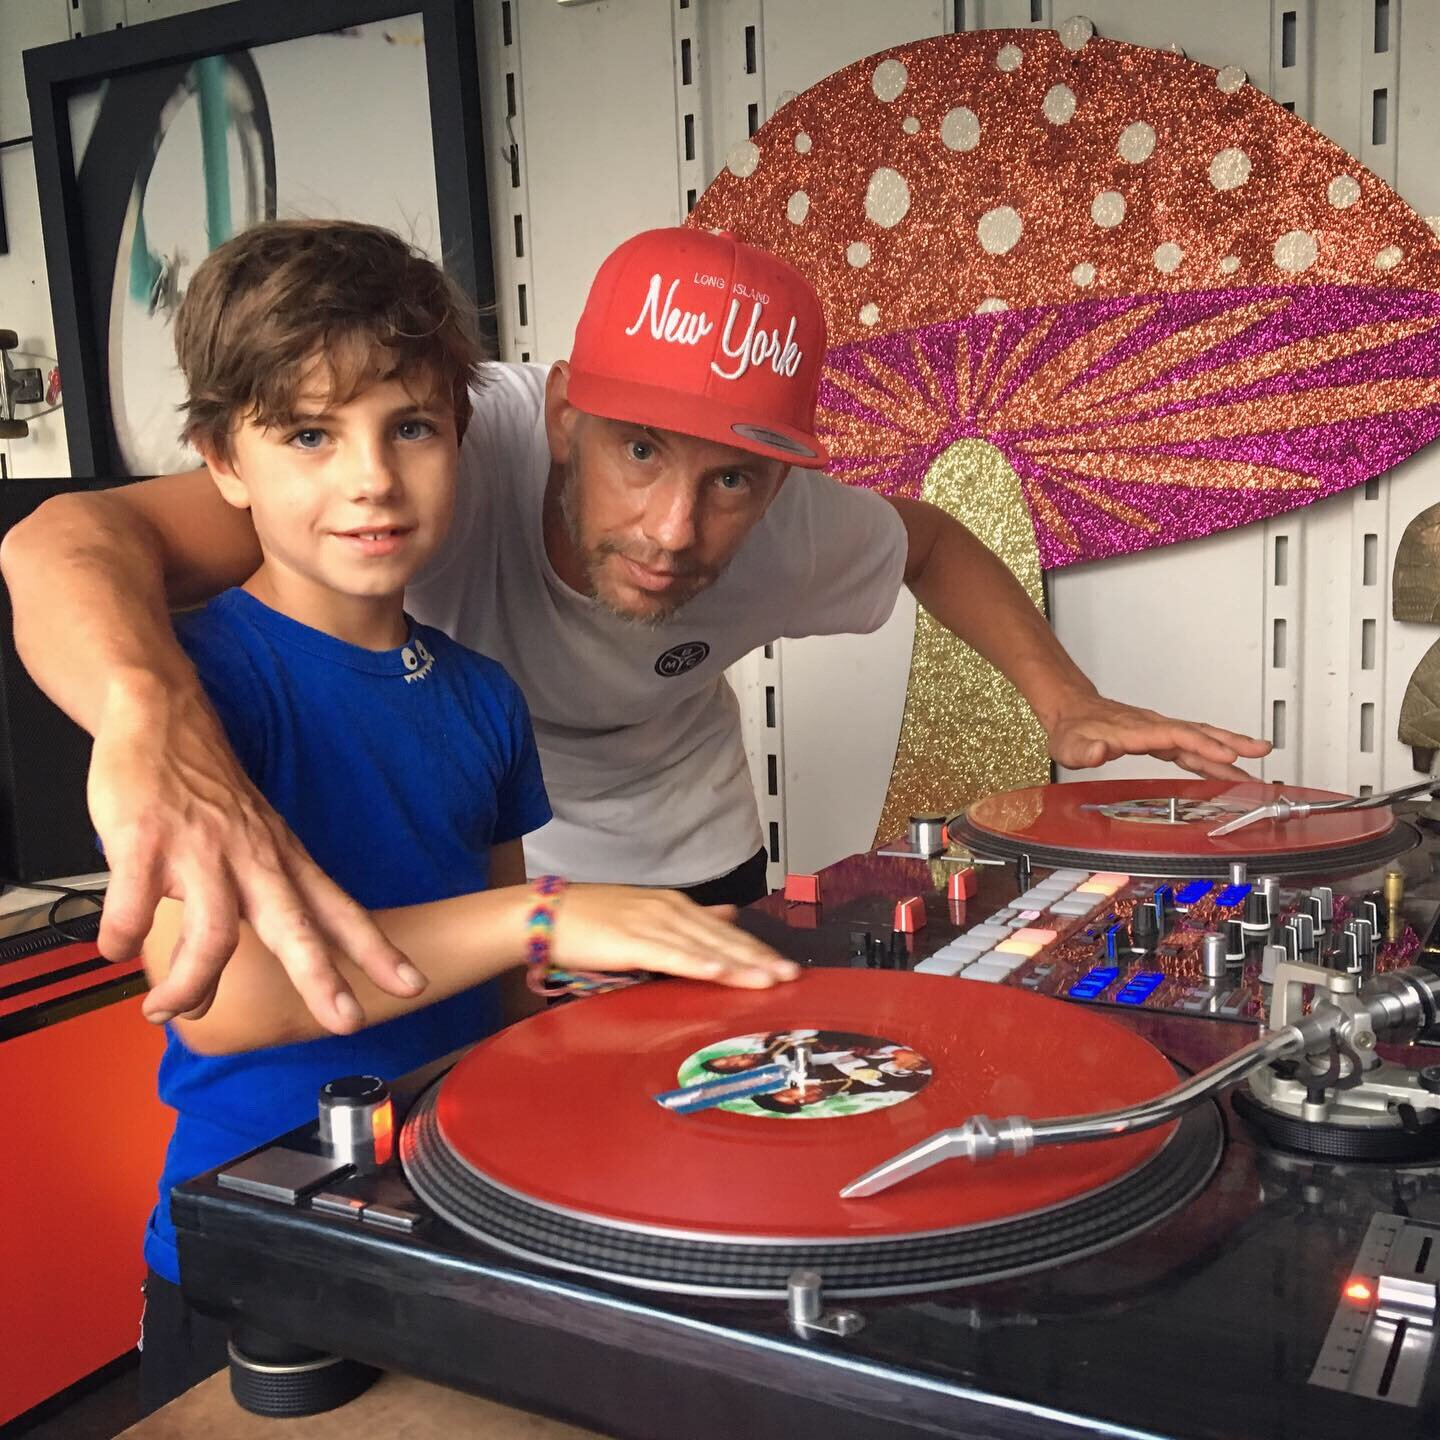 Private One on One DJ Lessons in our NEW DJ Booth!(inside our 18-wheeler) - Learn the basics of mixing on Technic 1200s using vinyl / CD / and with Serrato...Contact us to book a private one on one DJ Lesson (ages 13 and up)…DJ Lessons are weather permitting (seasonal) as we do them inside our 18 wheeler.Email: Jeff@Blockstrucksandart.com